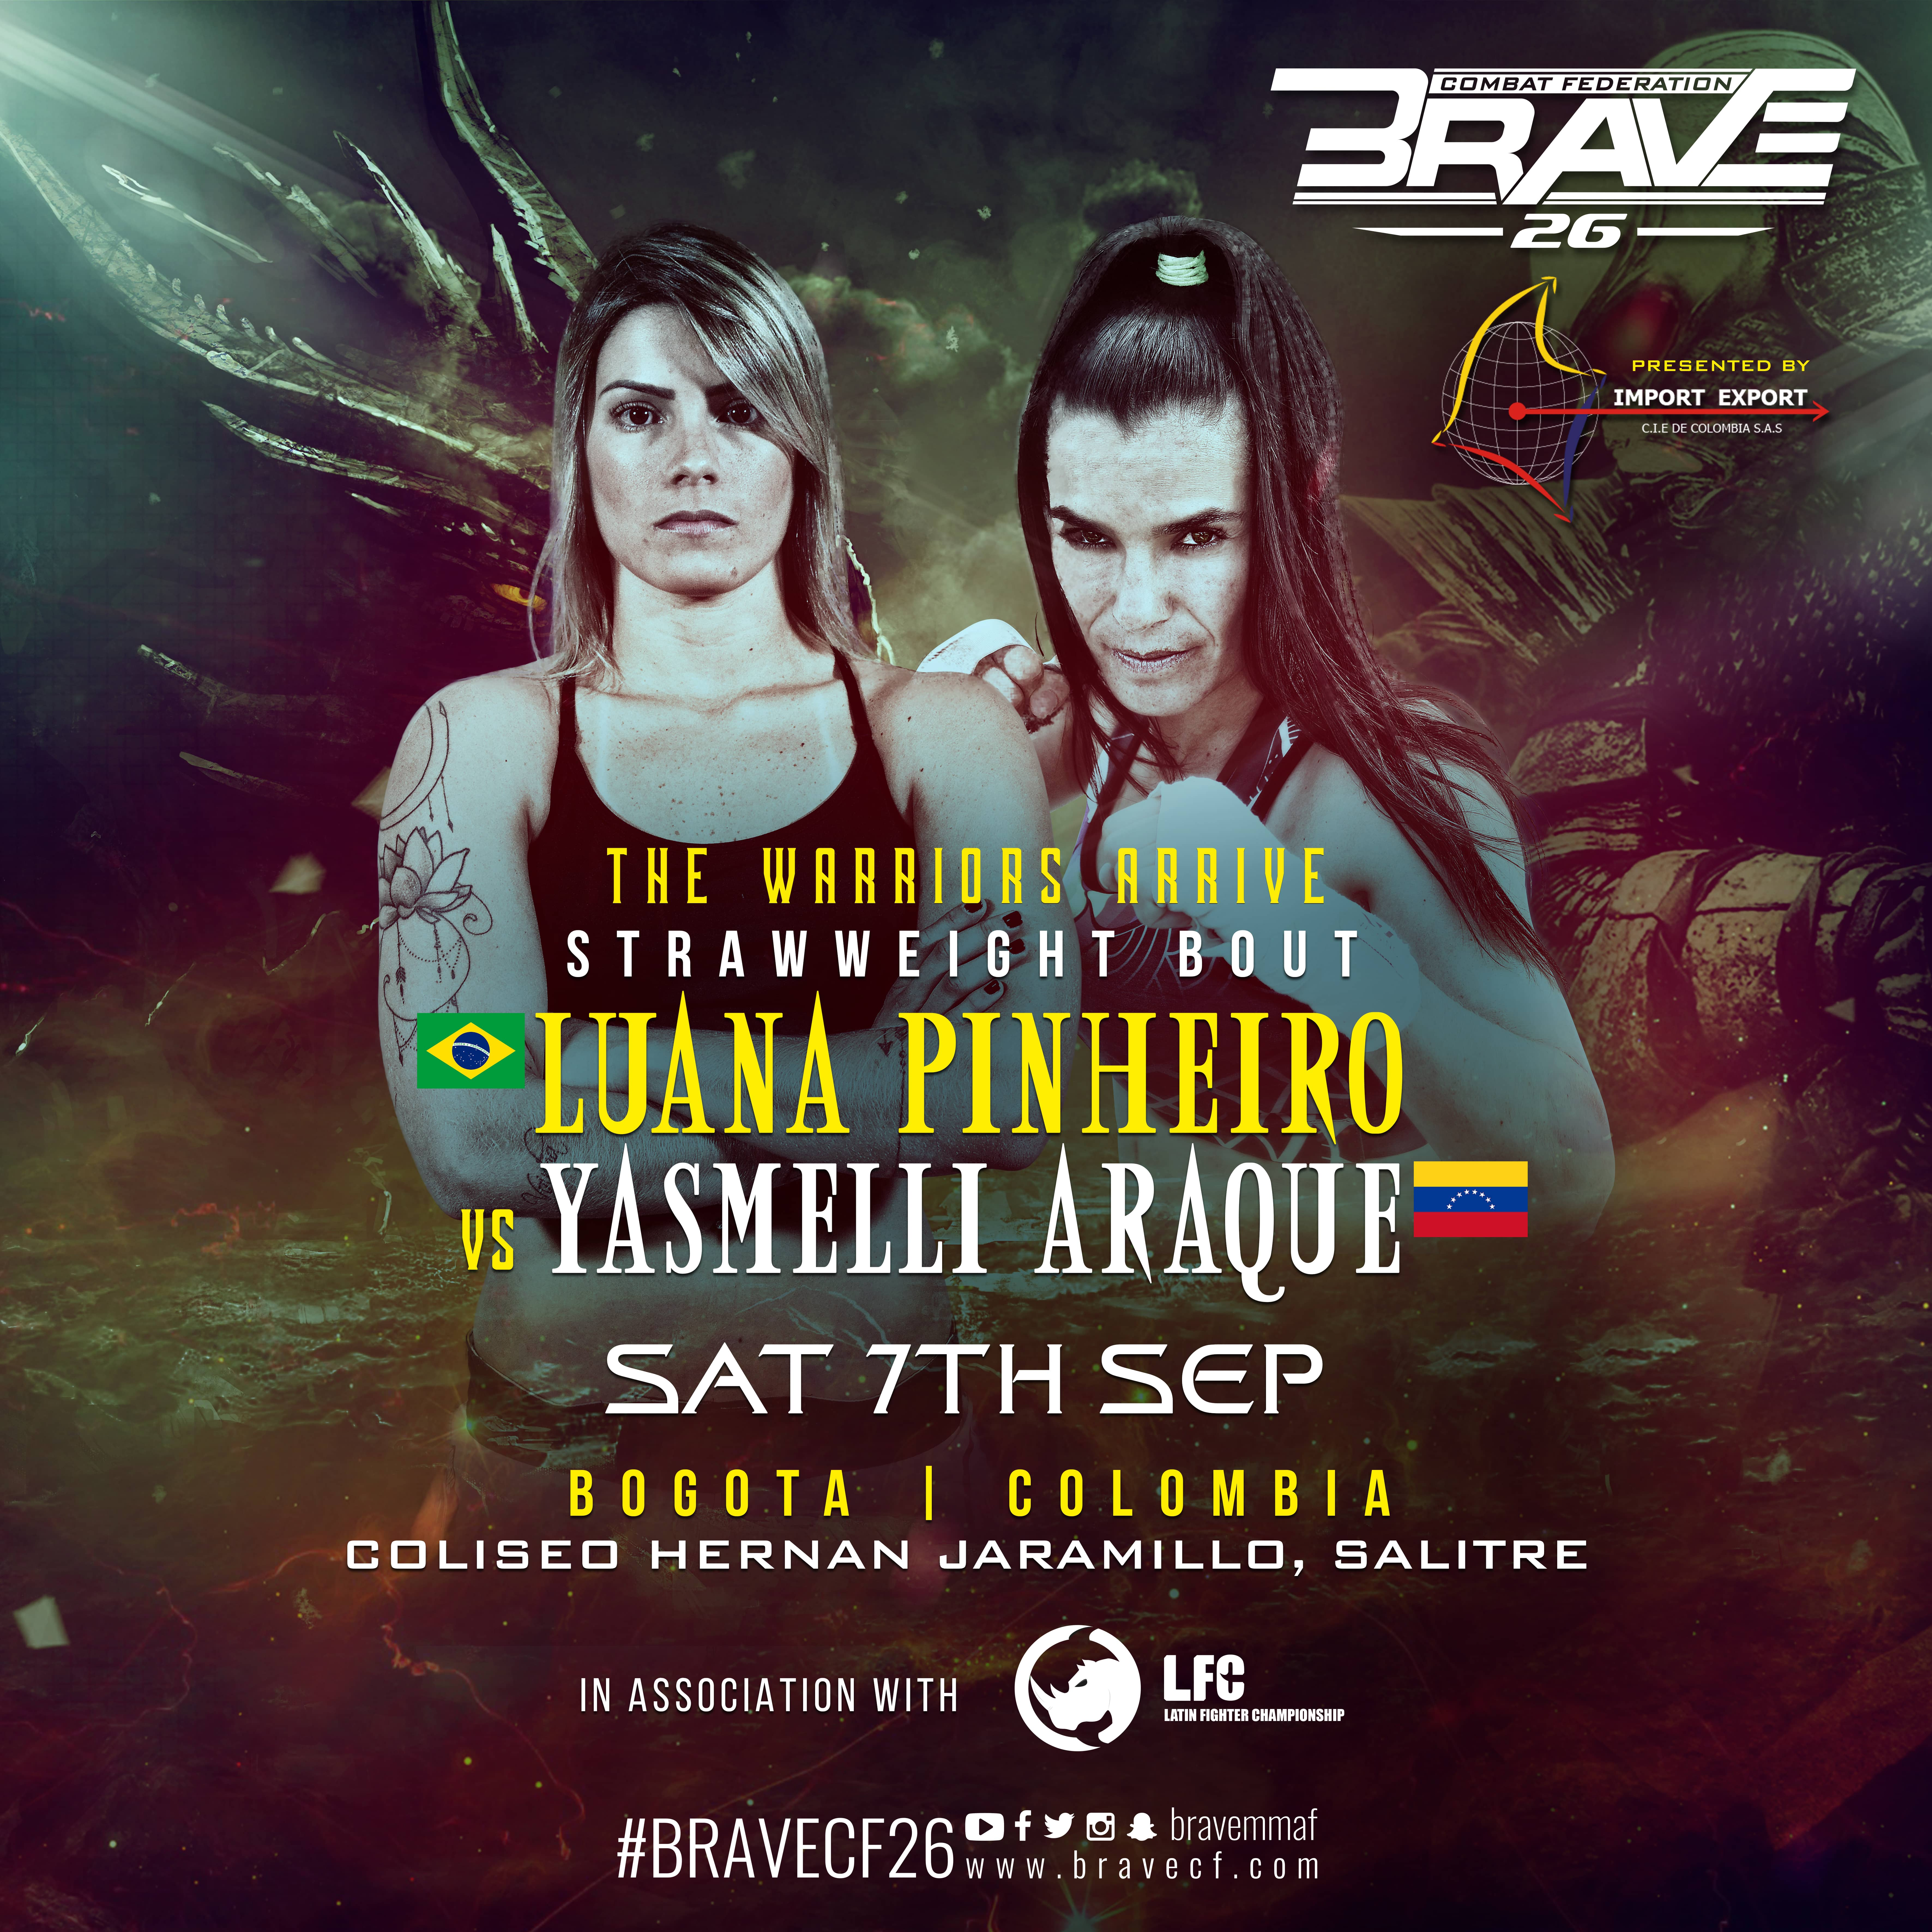 Luana Pinheiro's return set for BRAVE 26, in Colombia -